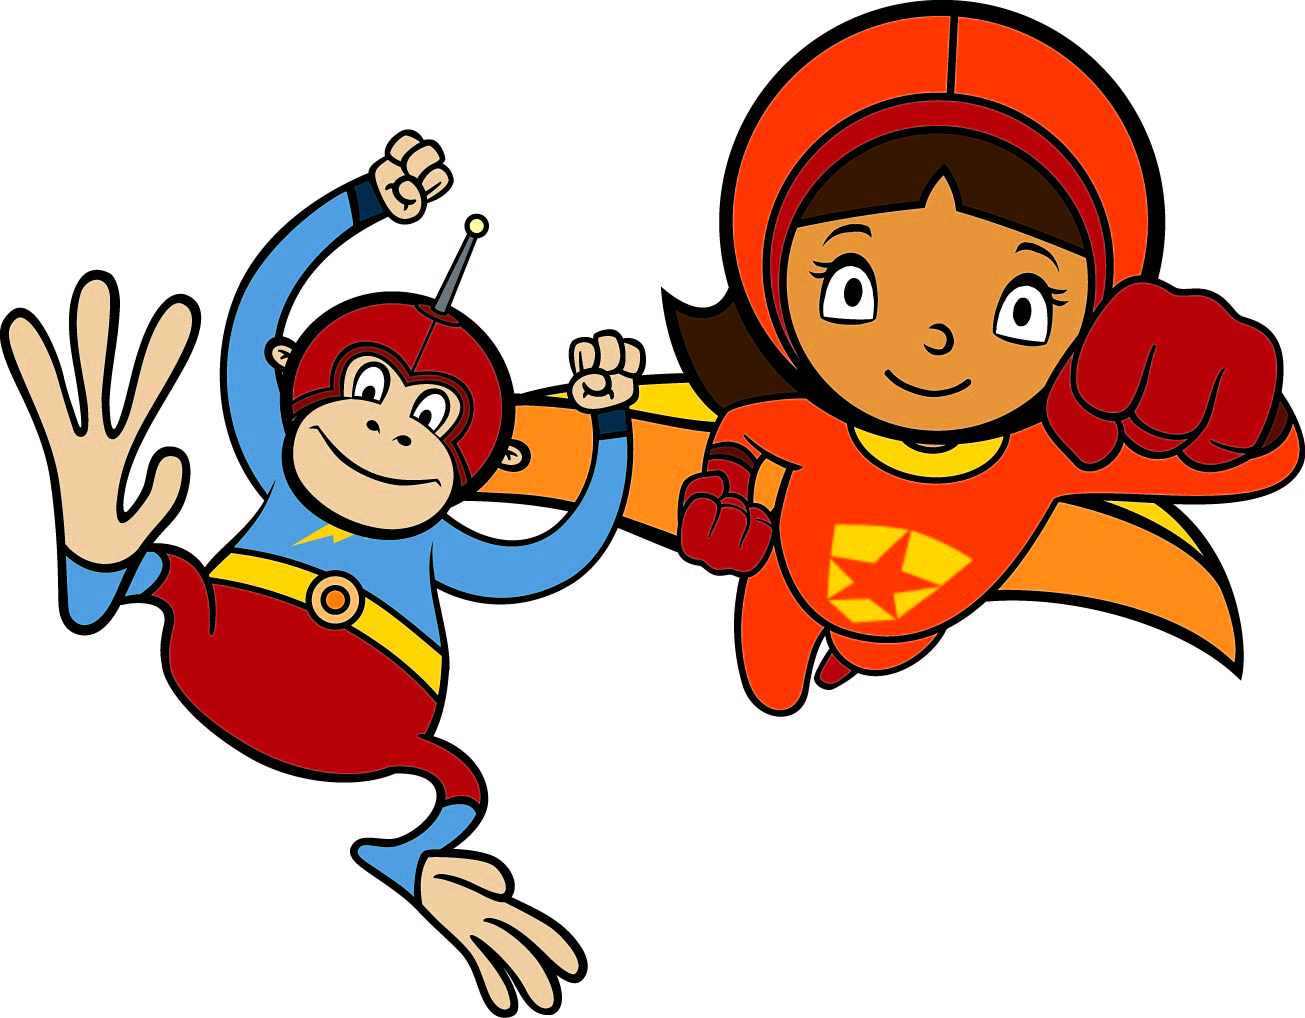 Image of WordGirl flying and Captain HuggyFace jumping